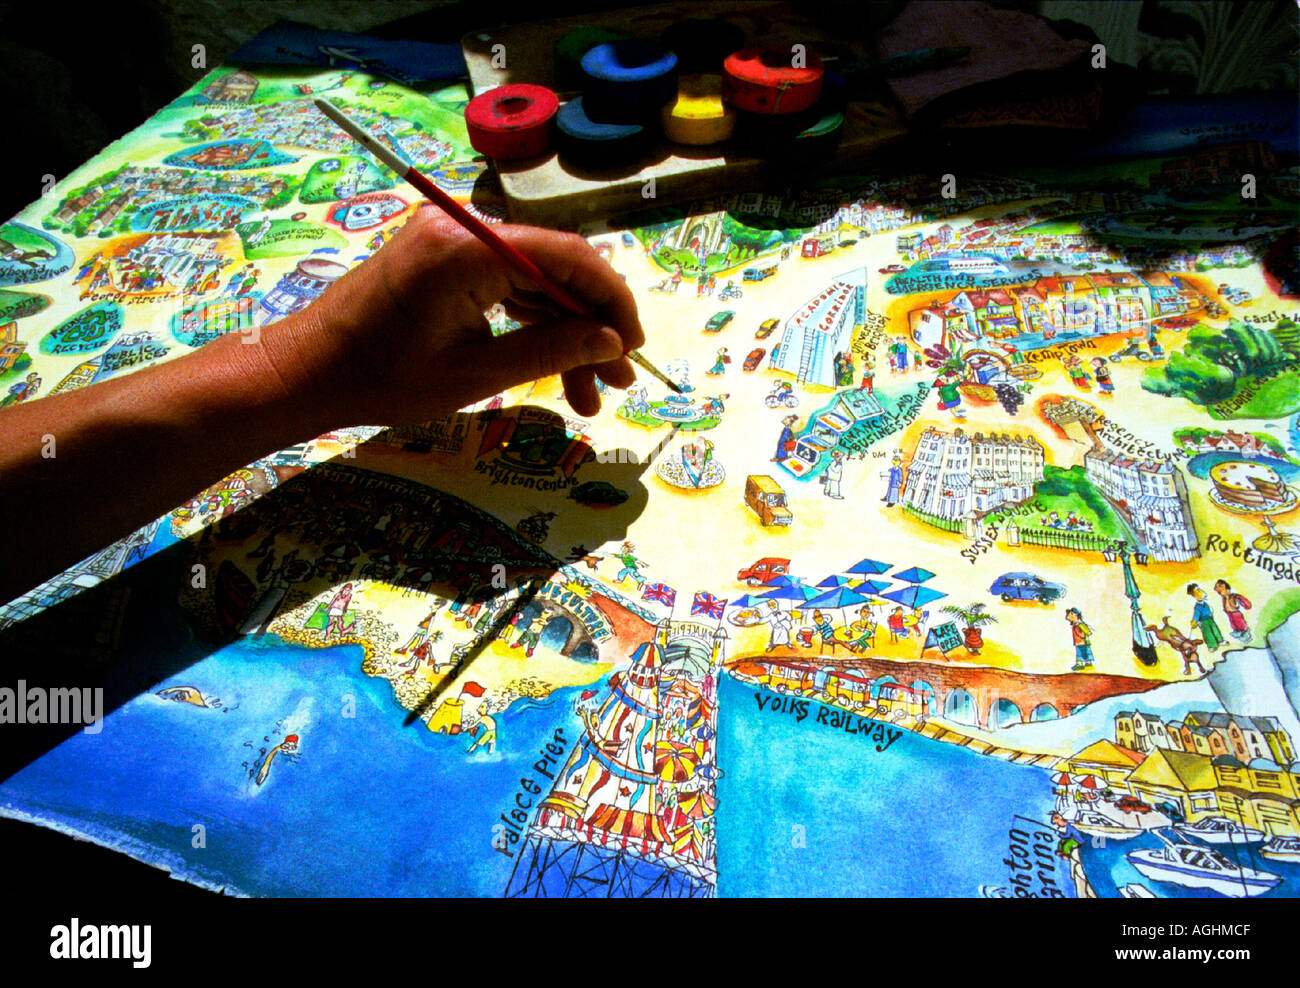 Mapping the future An artists vision of a new city from the merger of two towns - Stock Image